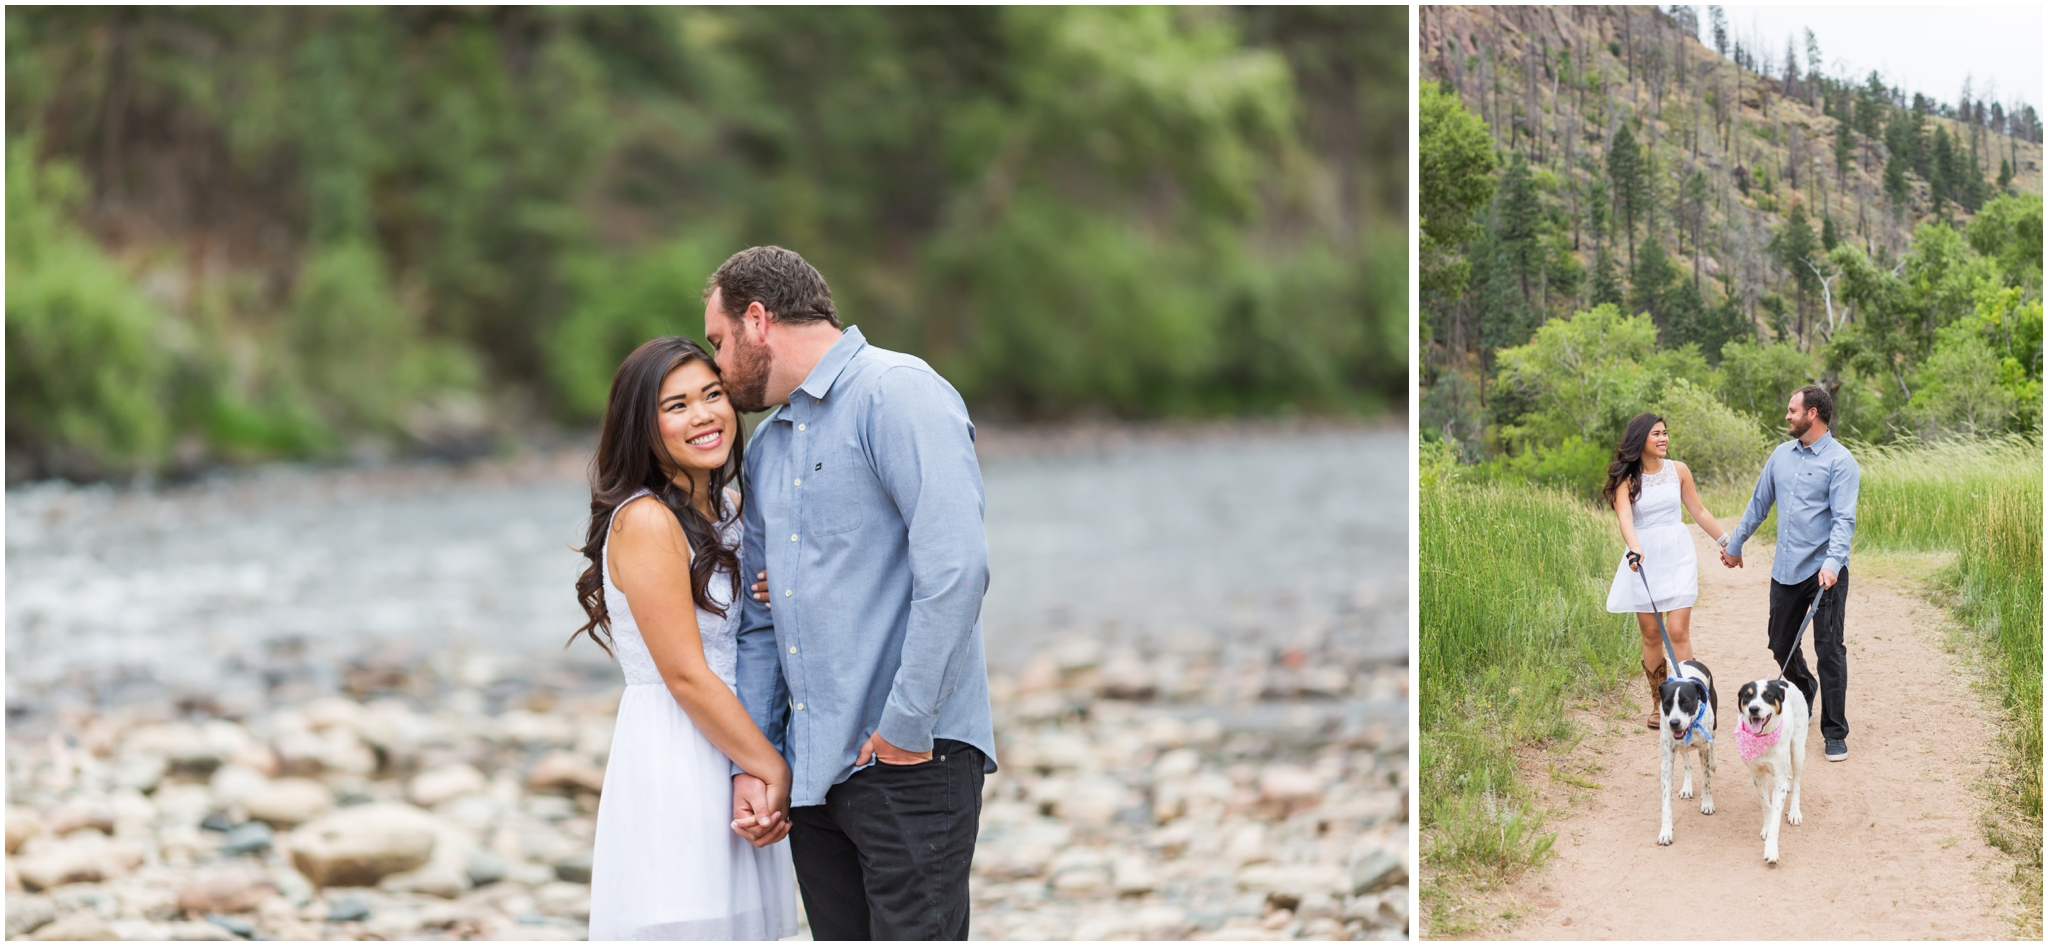 Poudre_Canyon_Engagement_Photography.jpg